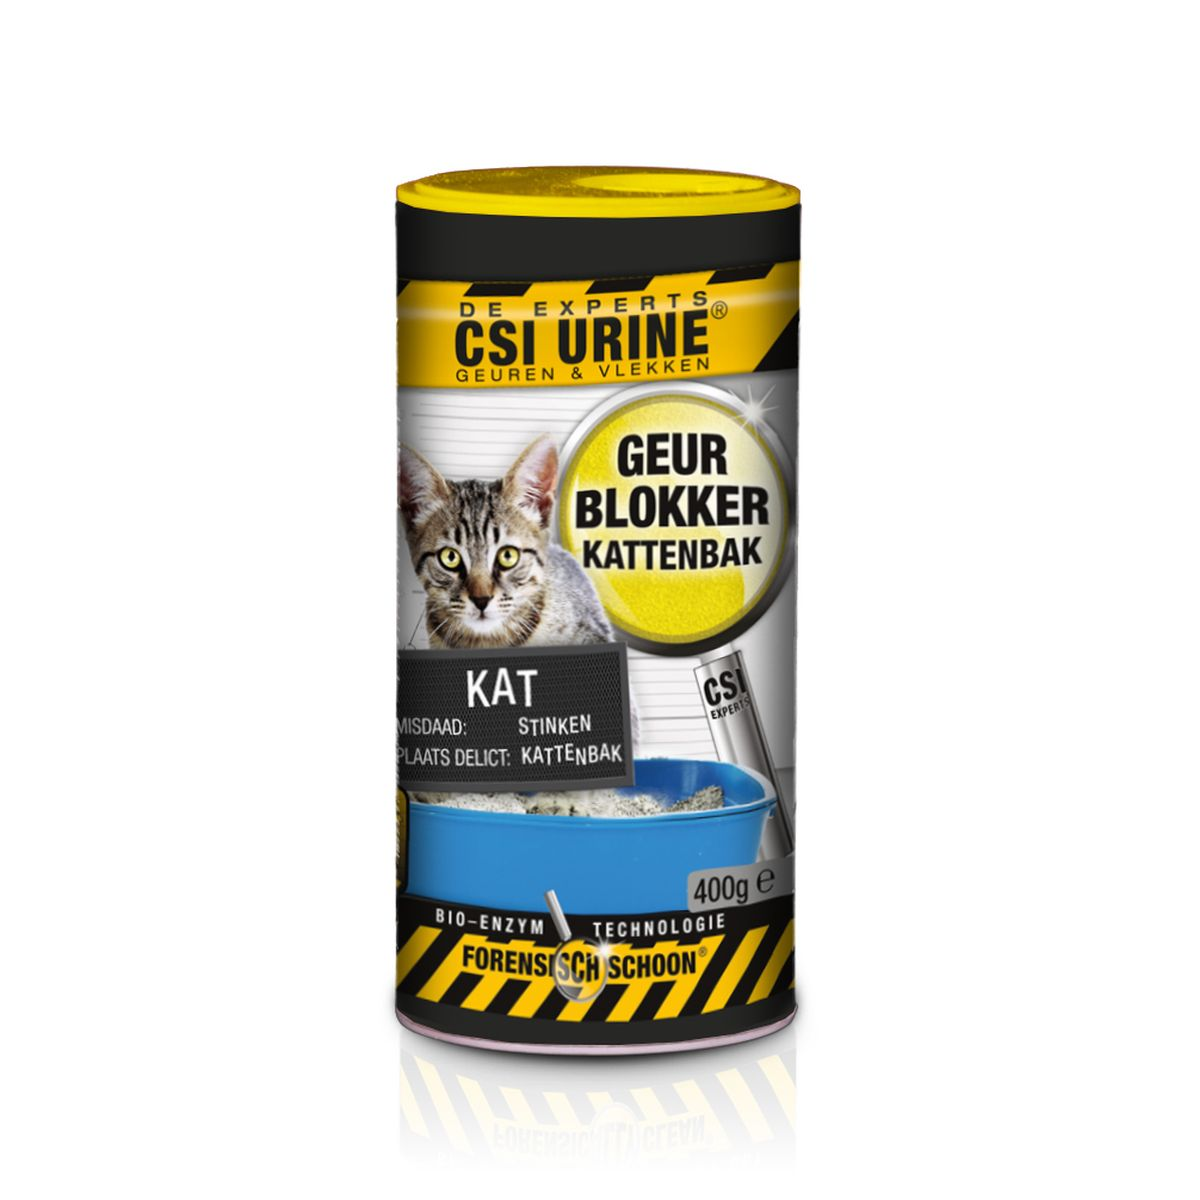 CSI URINE KATTENB.GRANUL.400GR N 00001